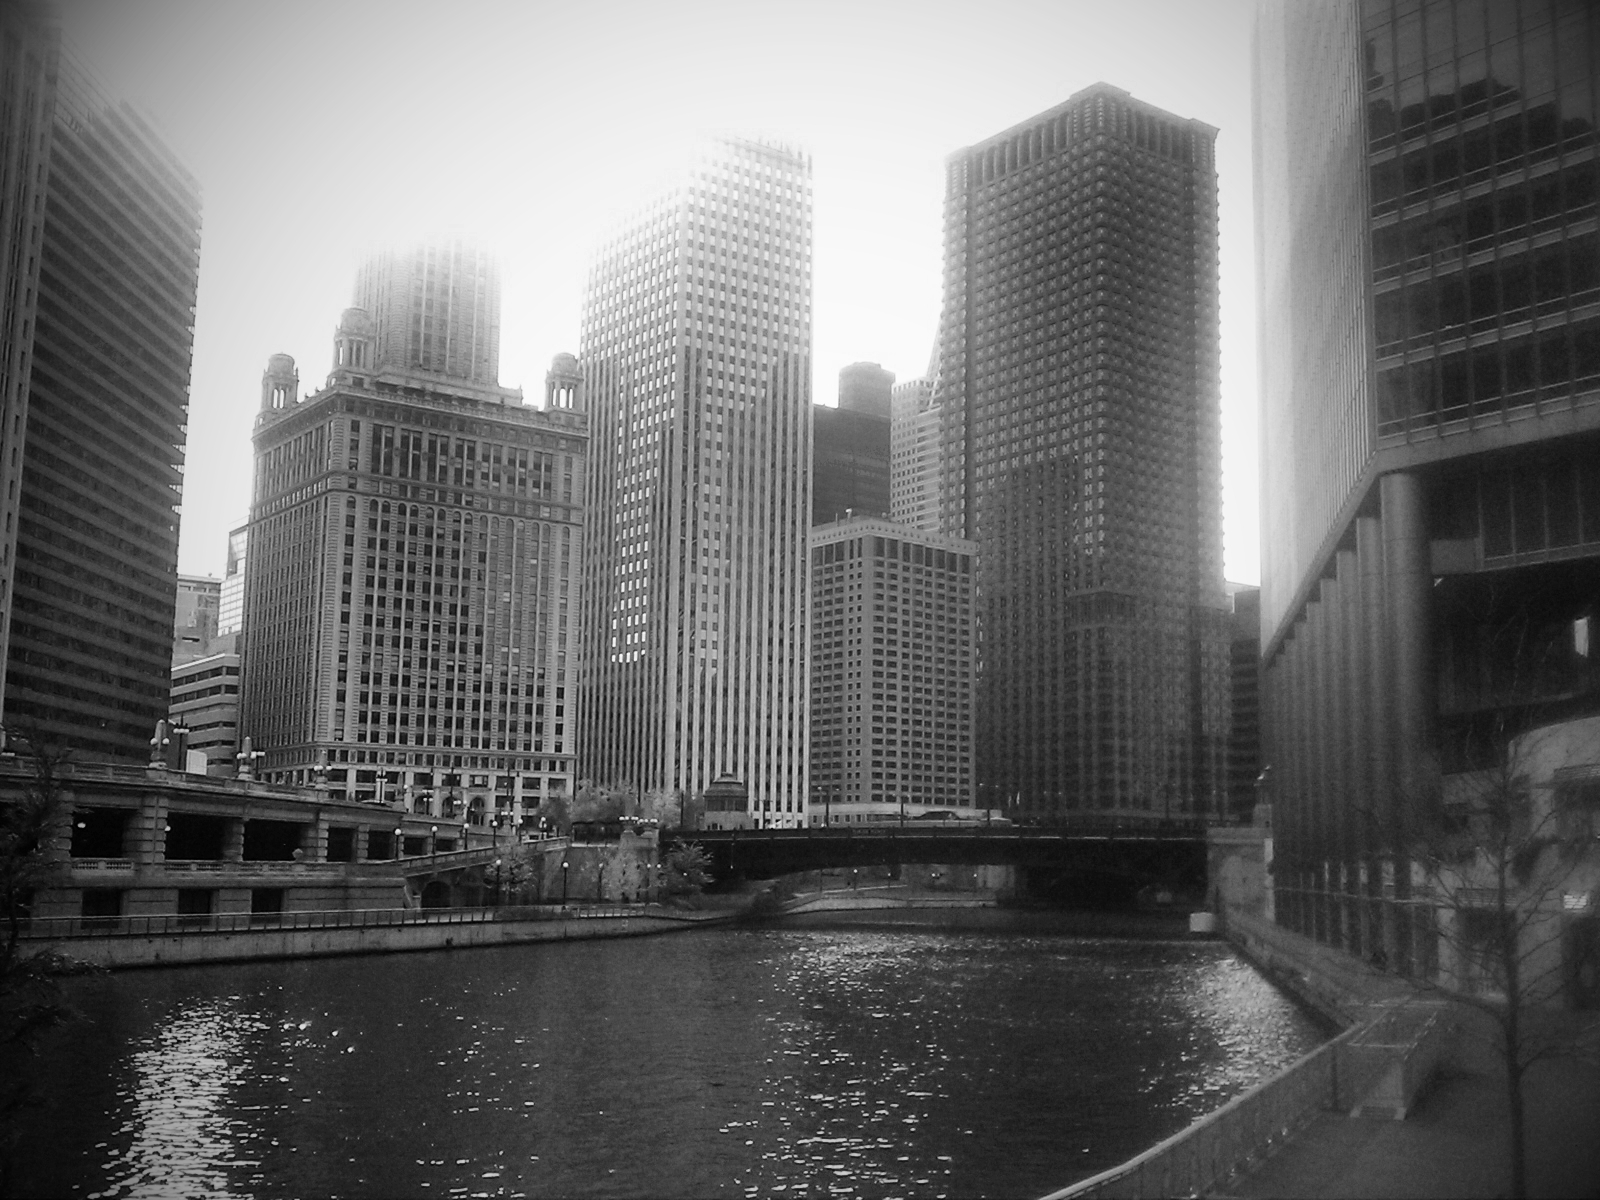 A black and white image of the Chicago River